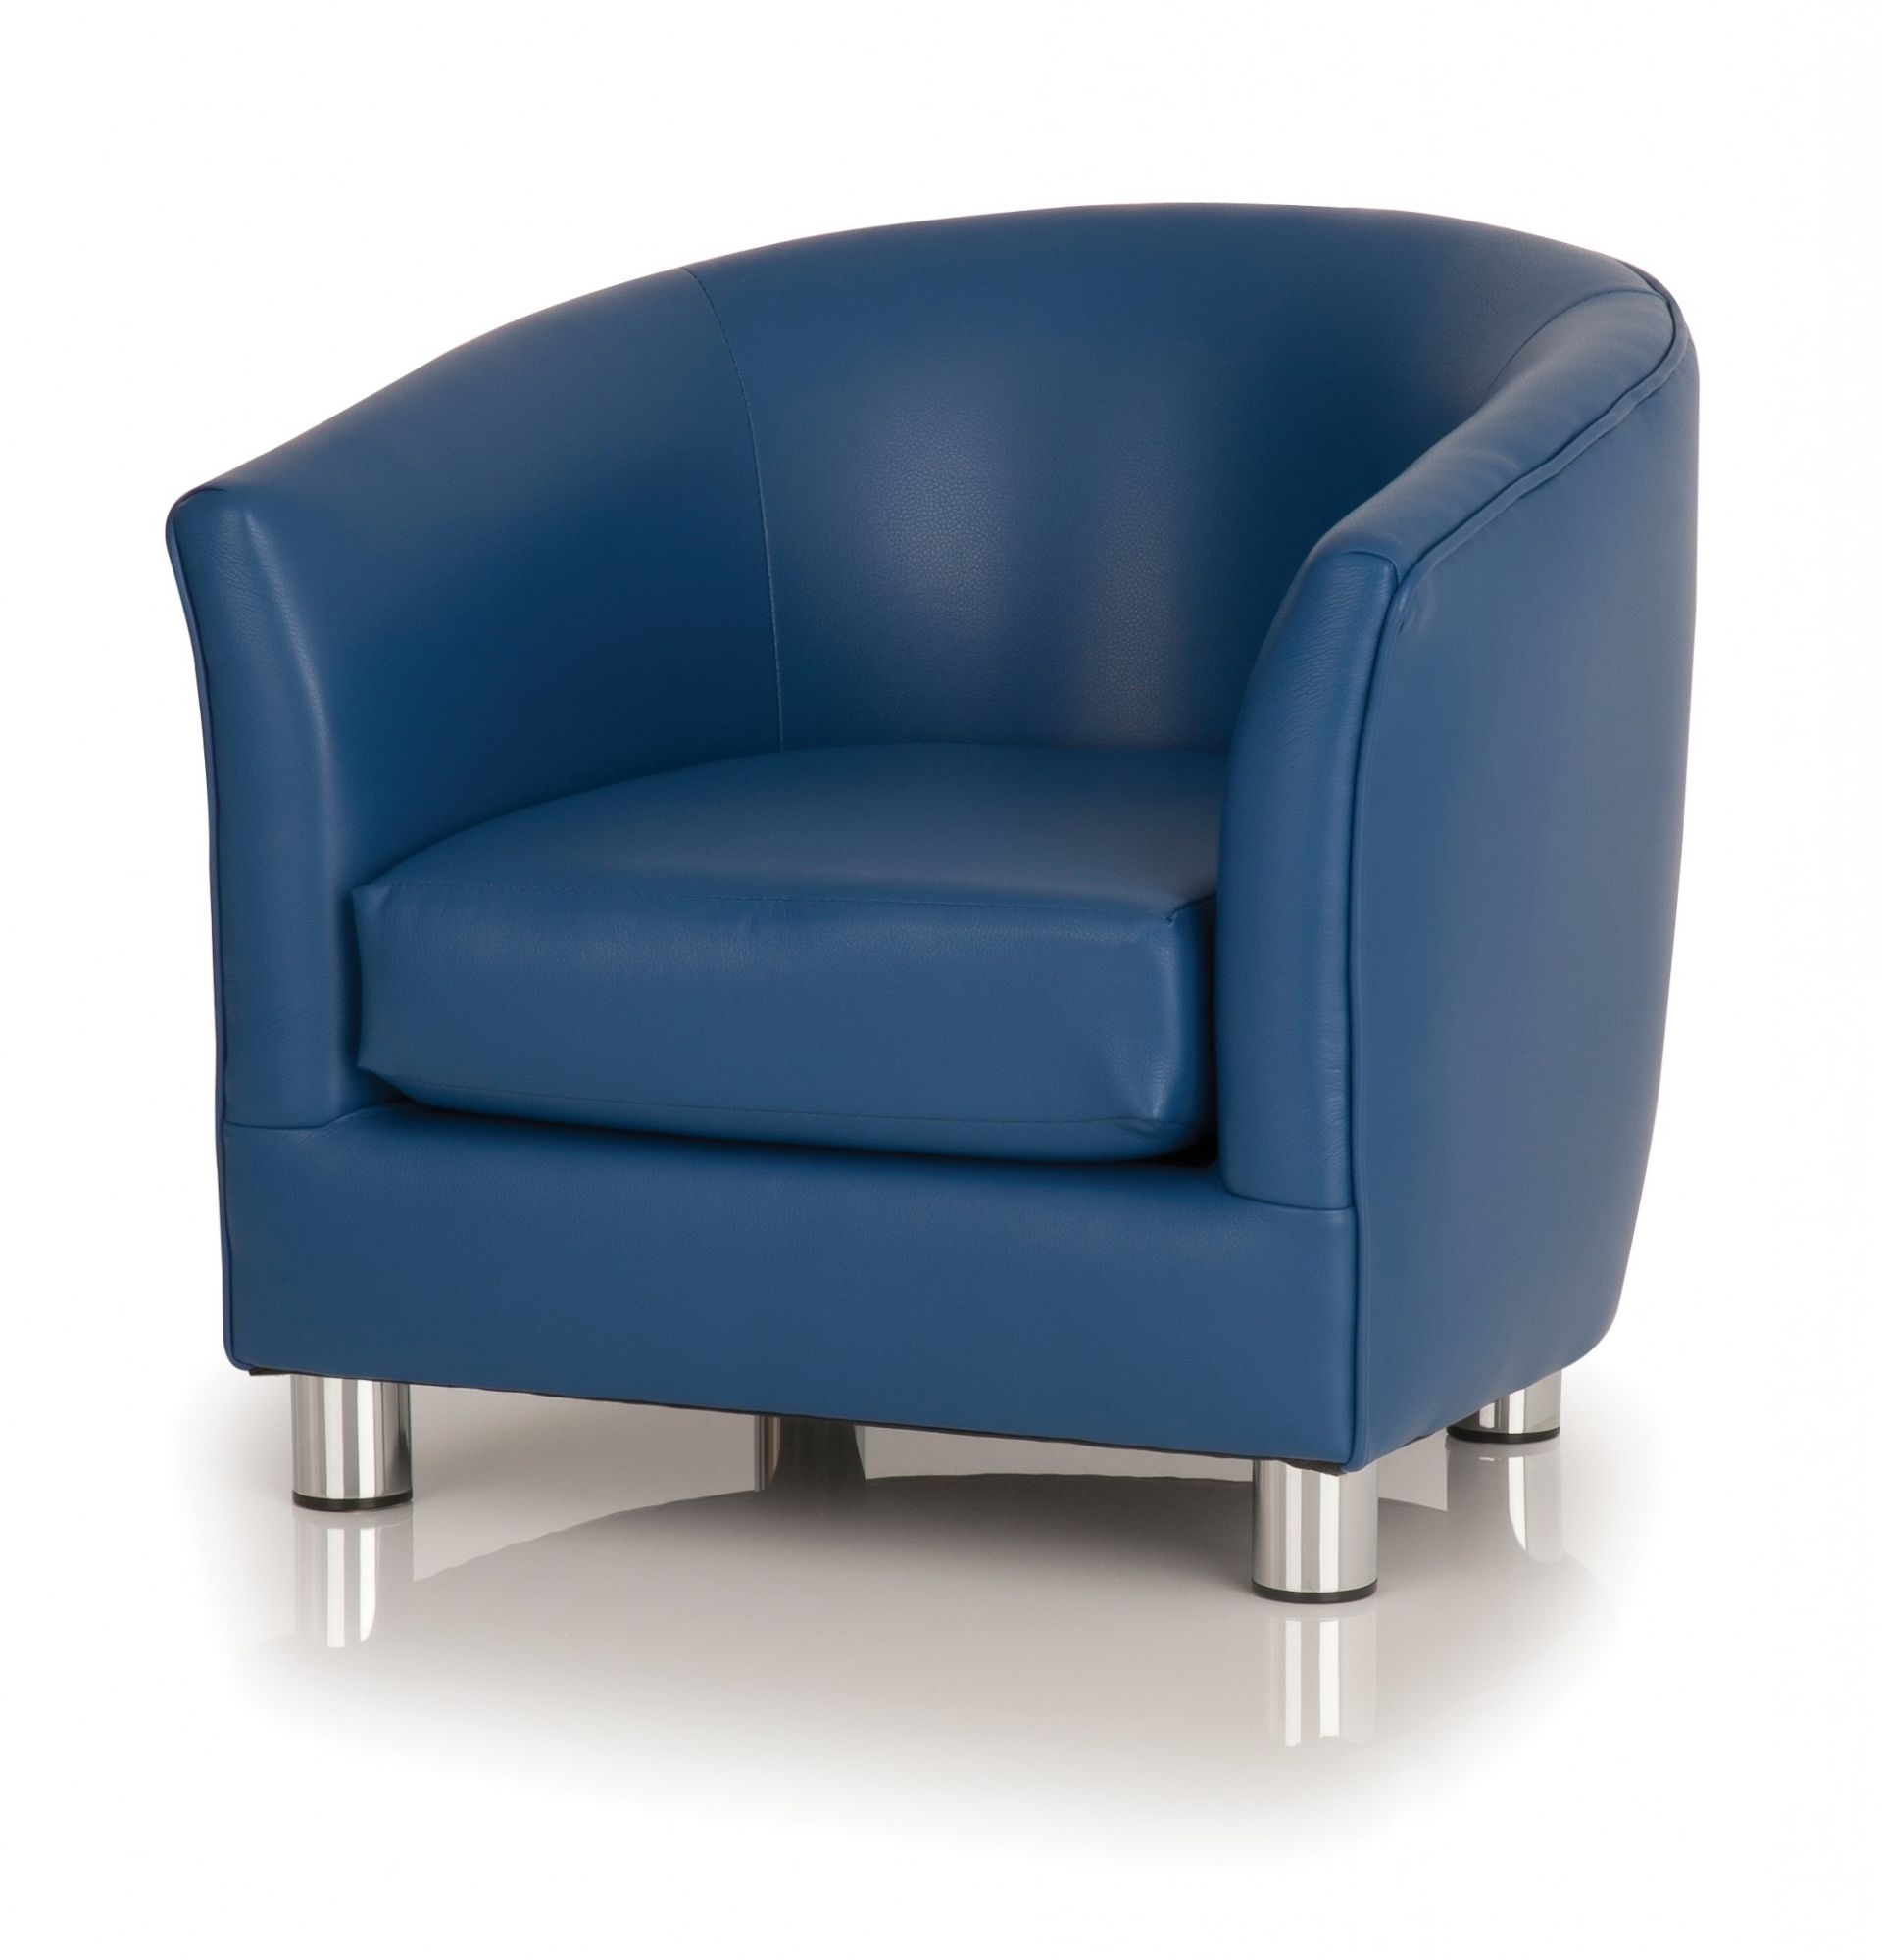 oversized teal blue leather club chair slipcovers